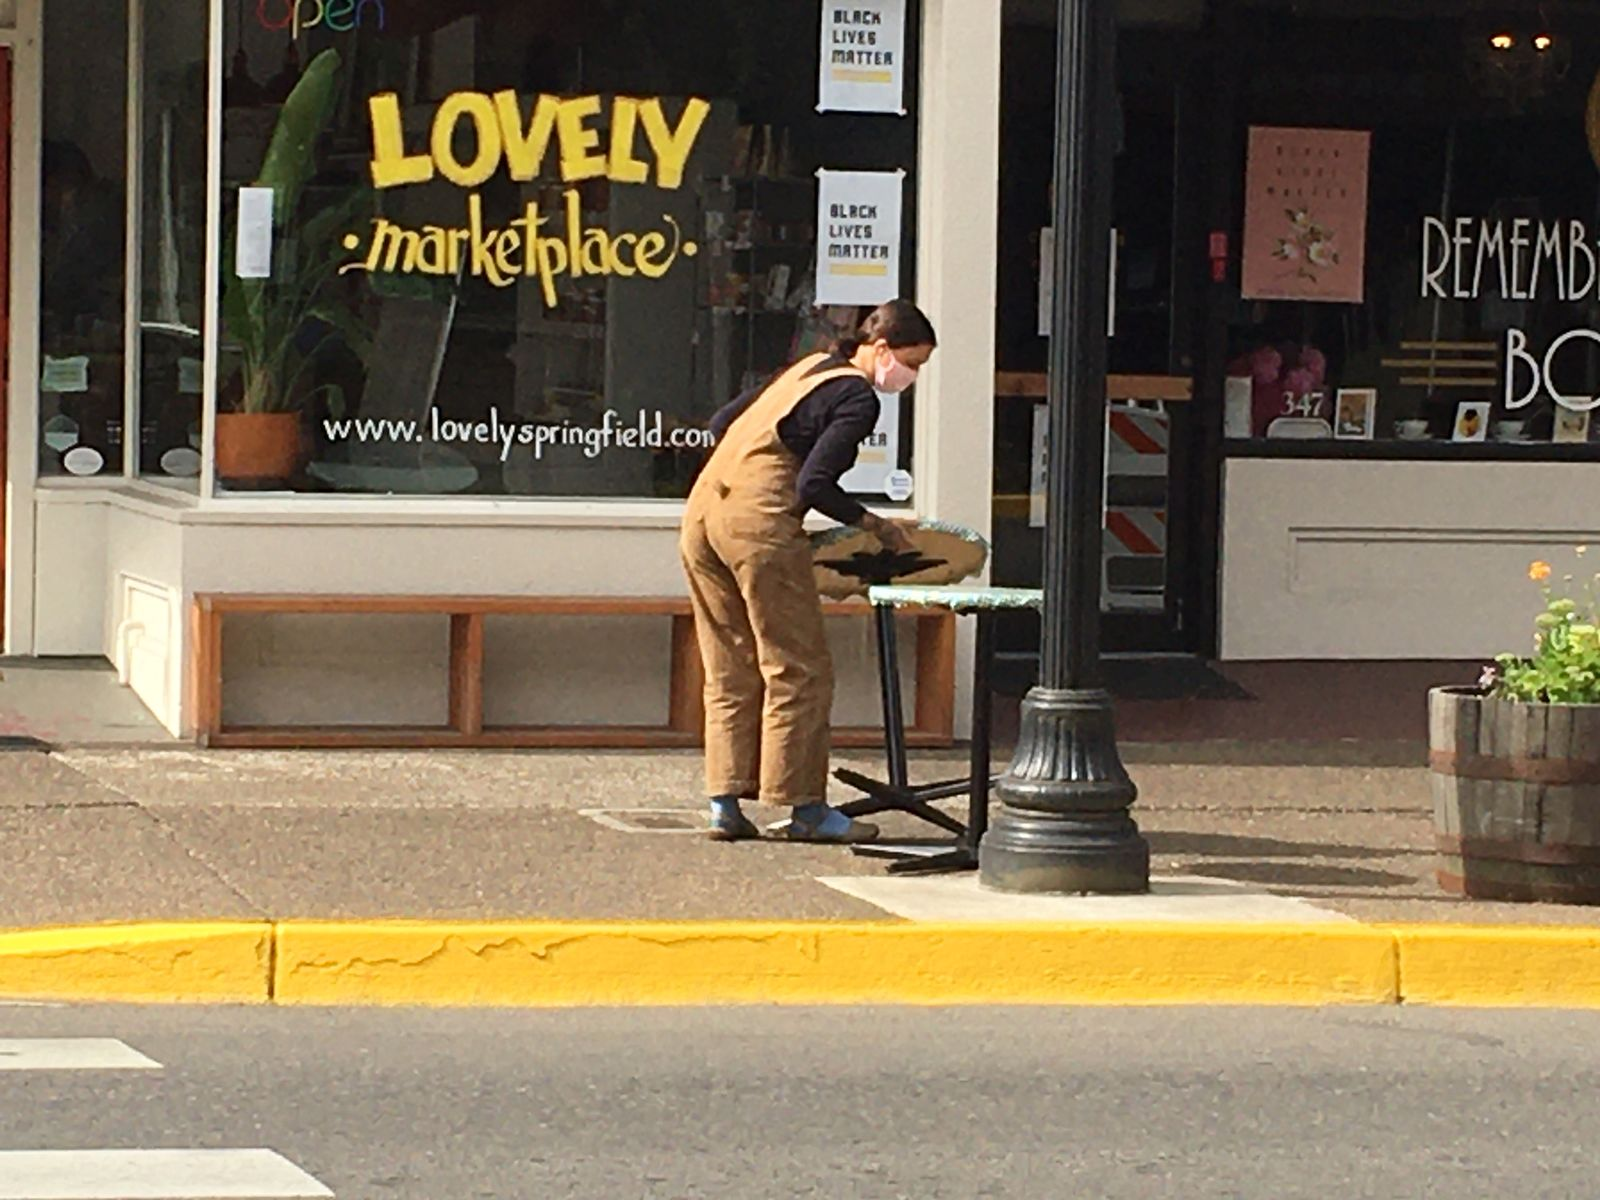 Restaurants in Springfield look to expand outdoor seating options amid COVID requirements (SBG)